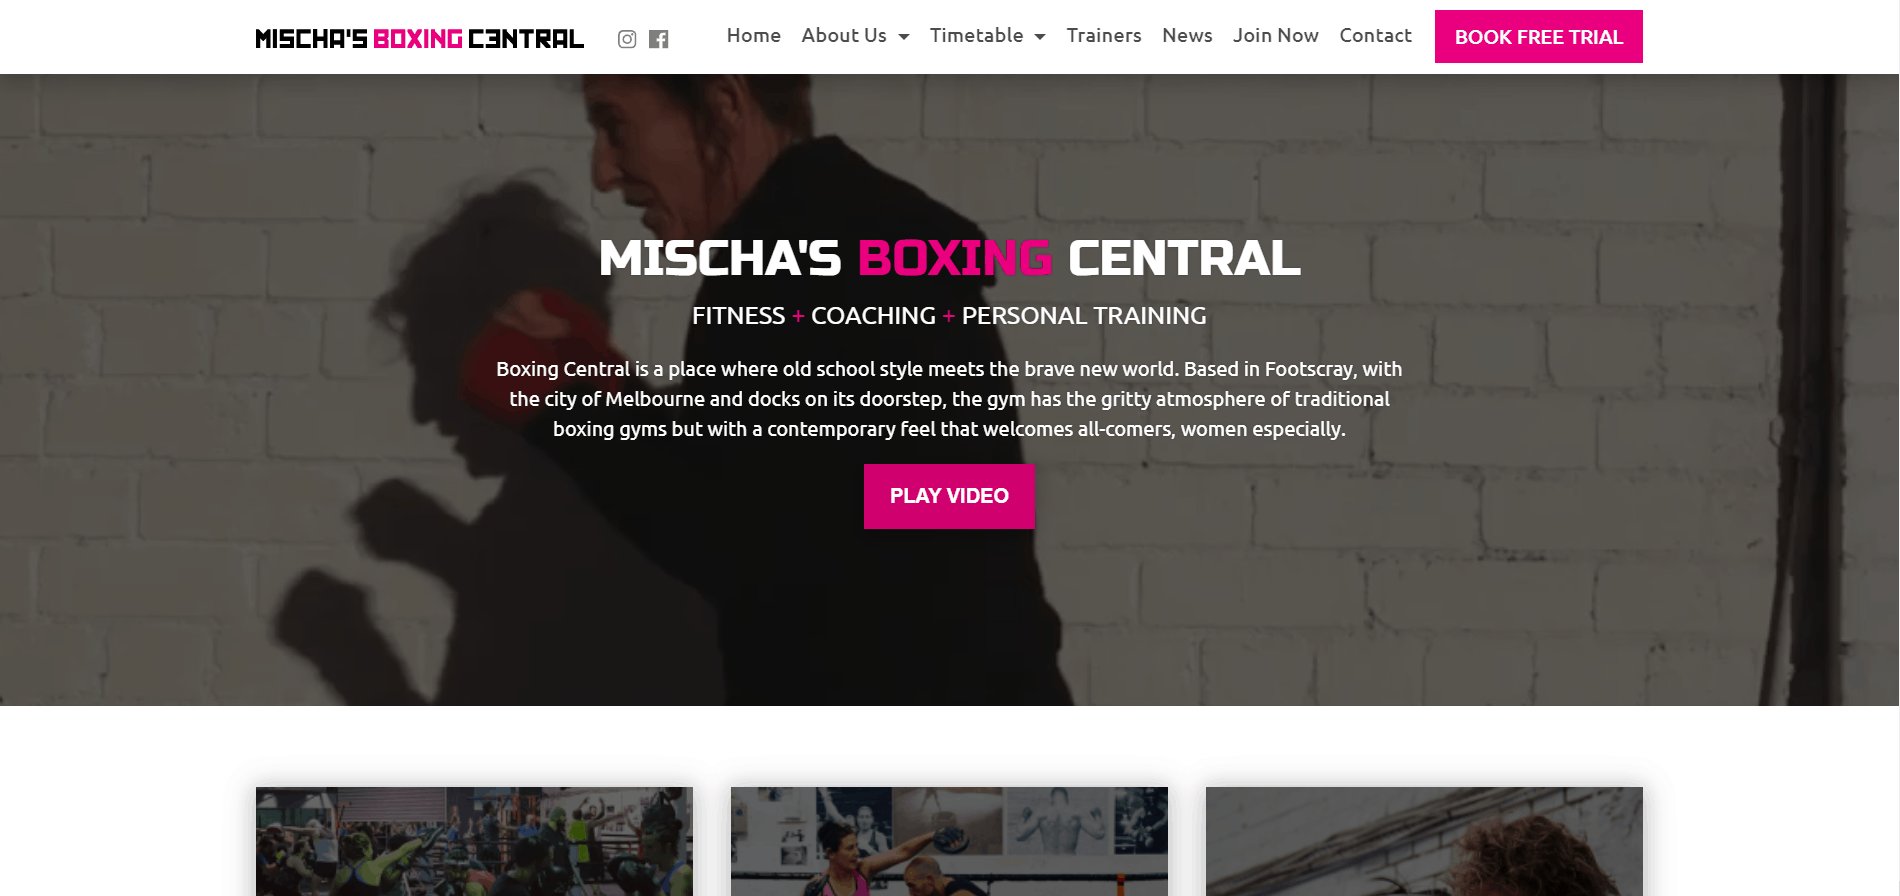 Mischa's Boxing Central